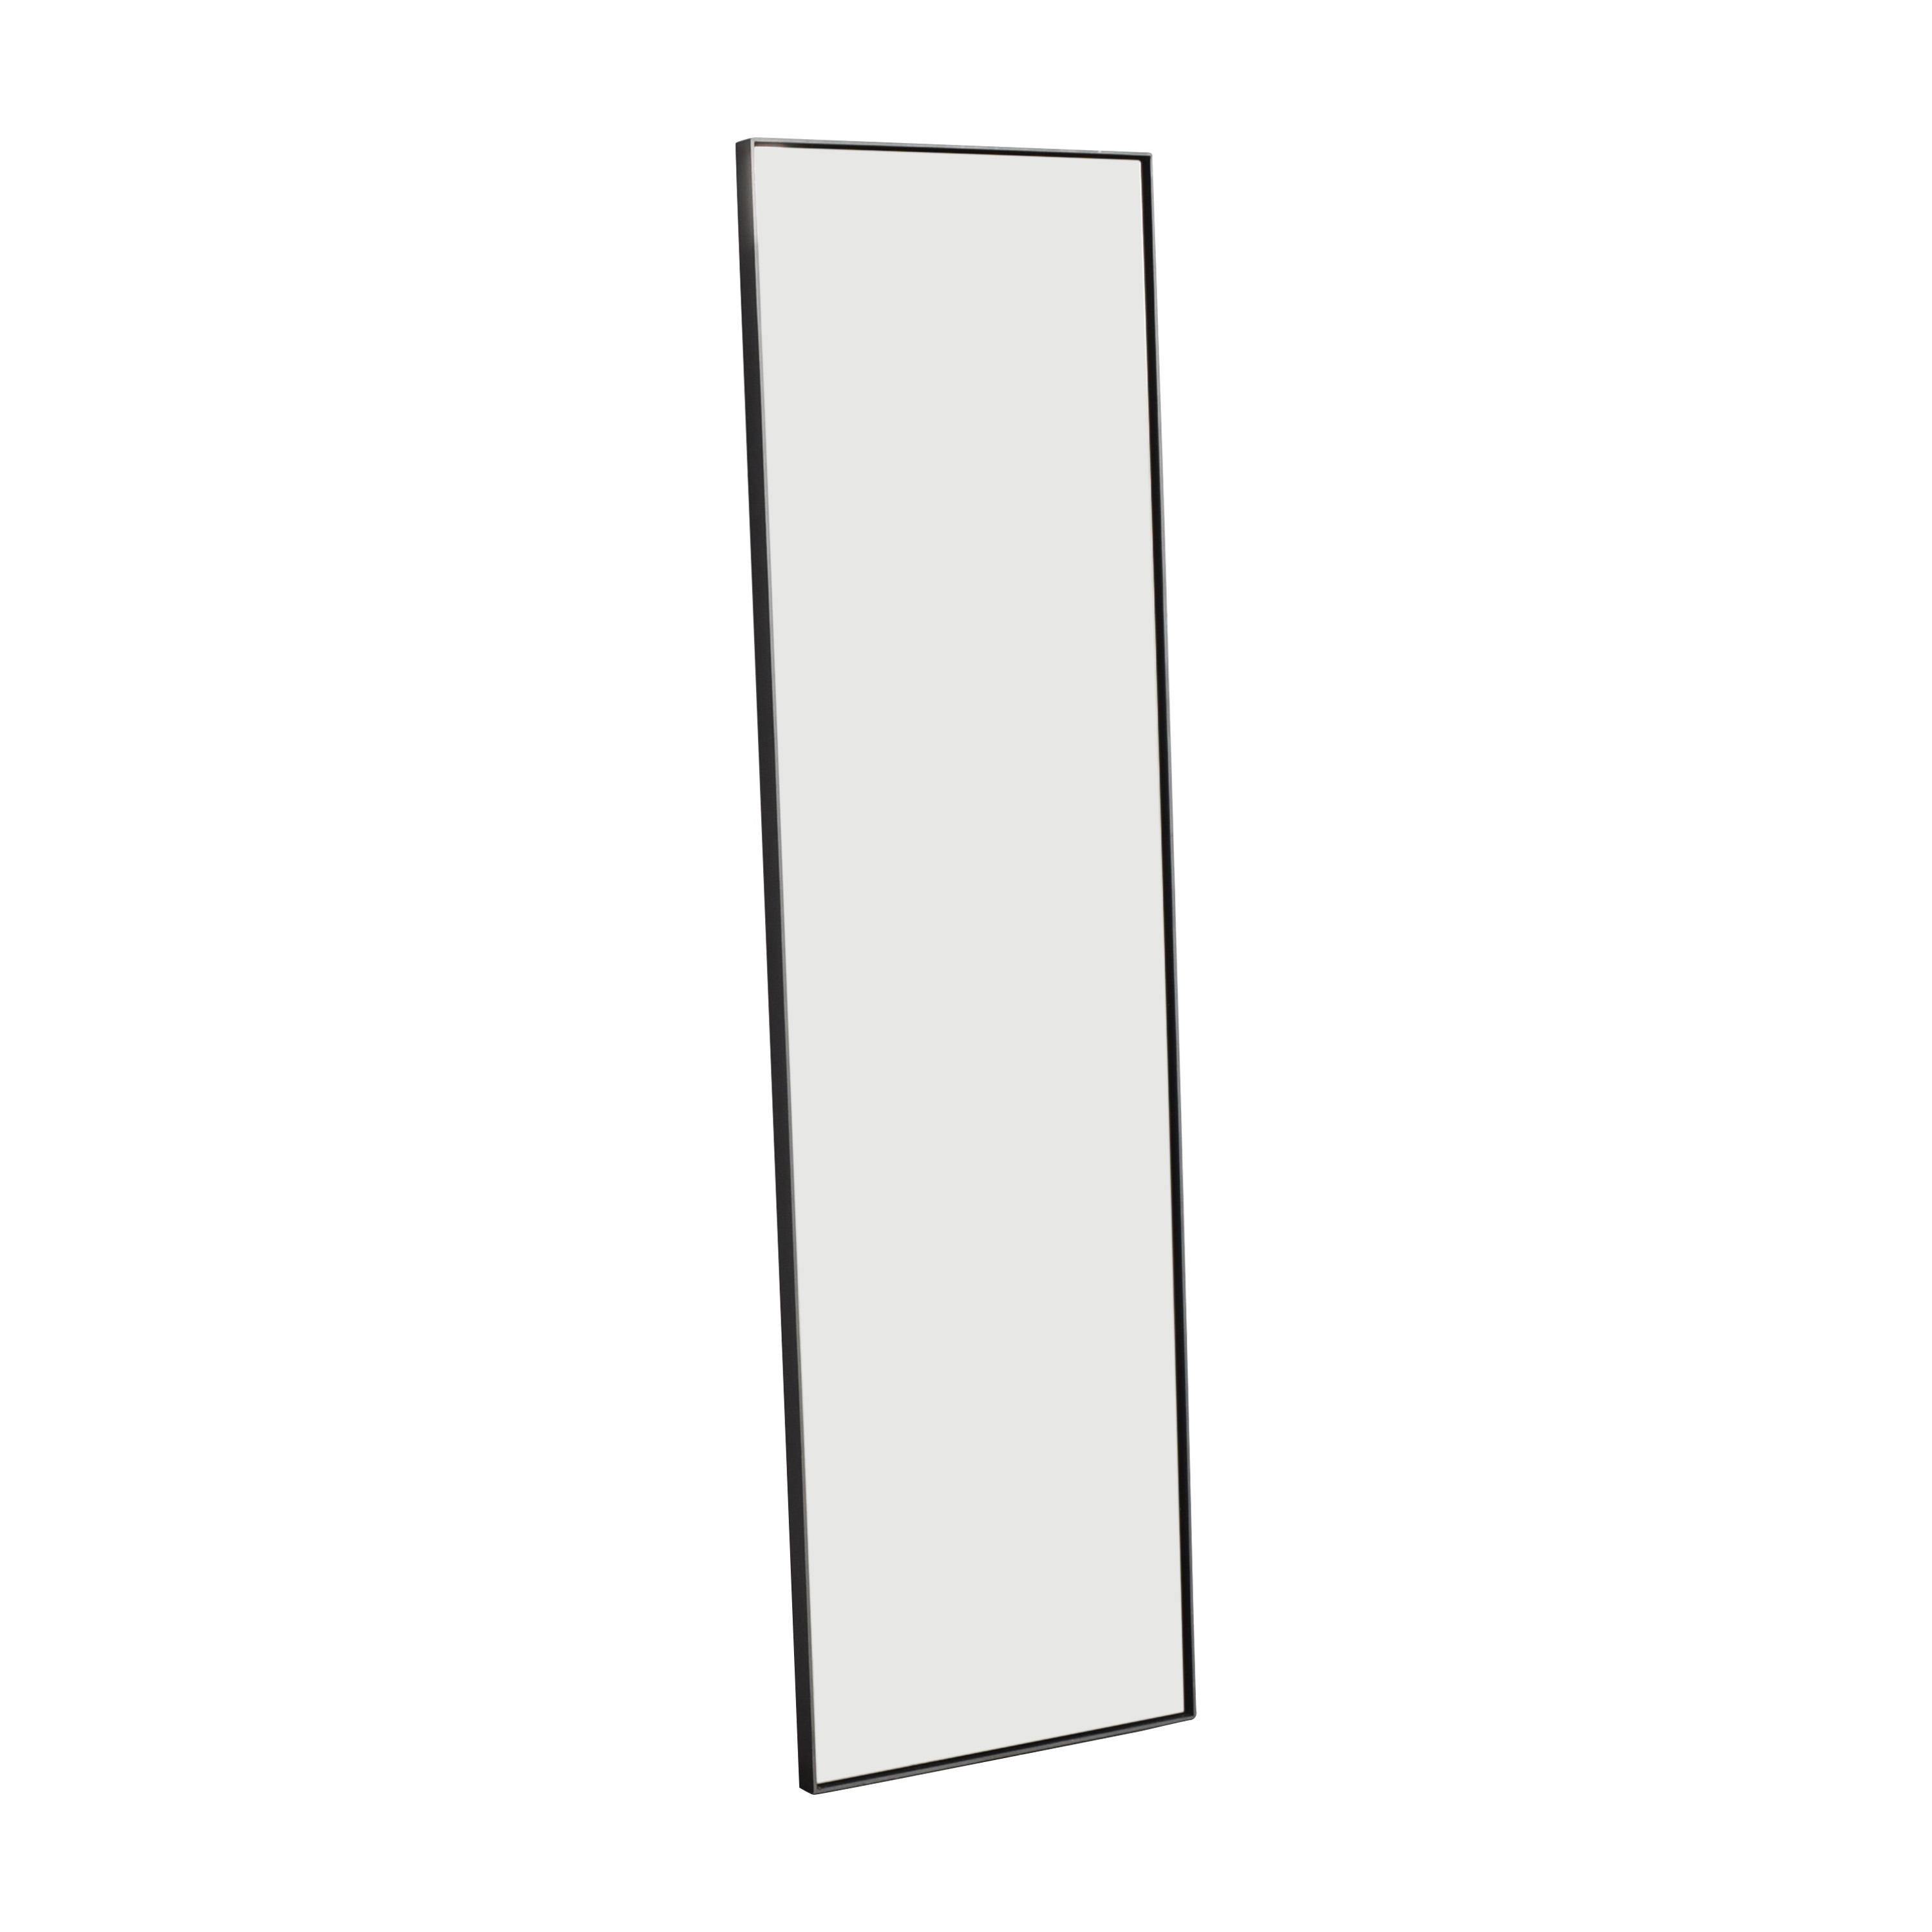 Restoration Hardware Floating Floor Mirror Restoration Hardware